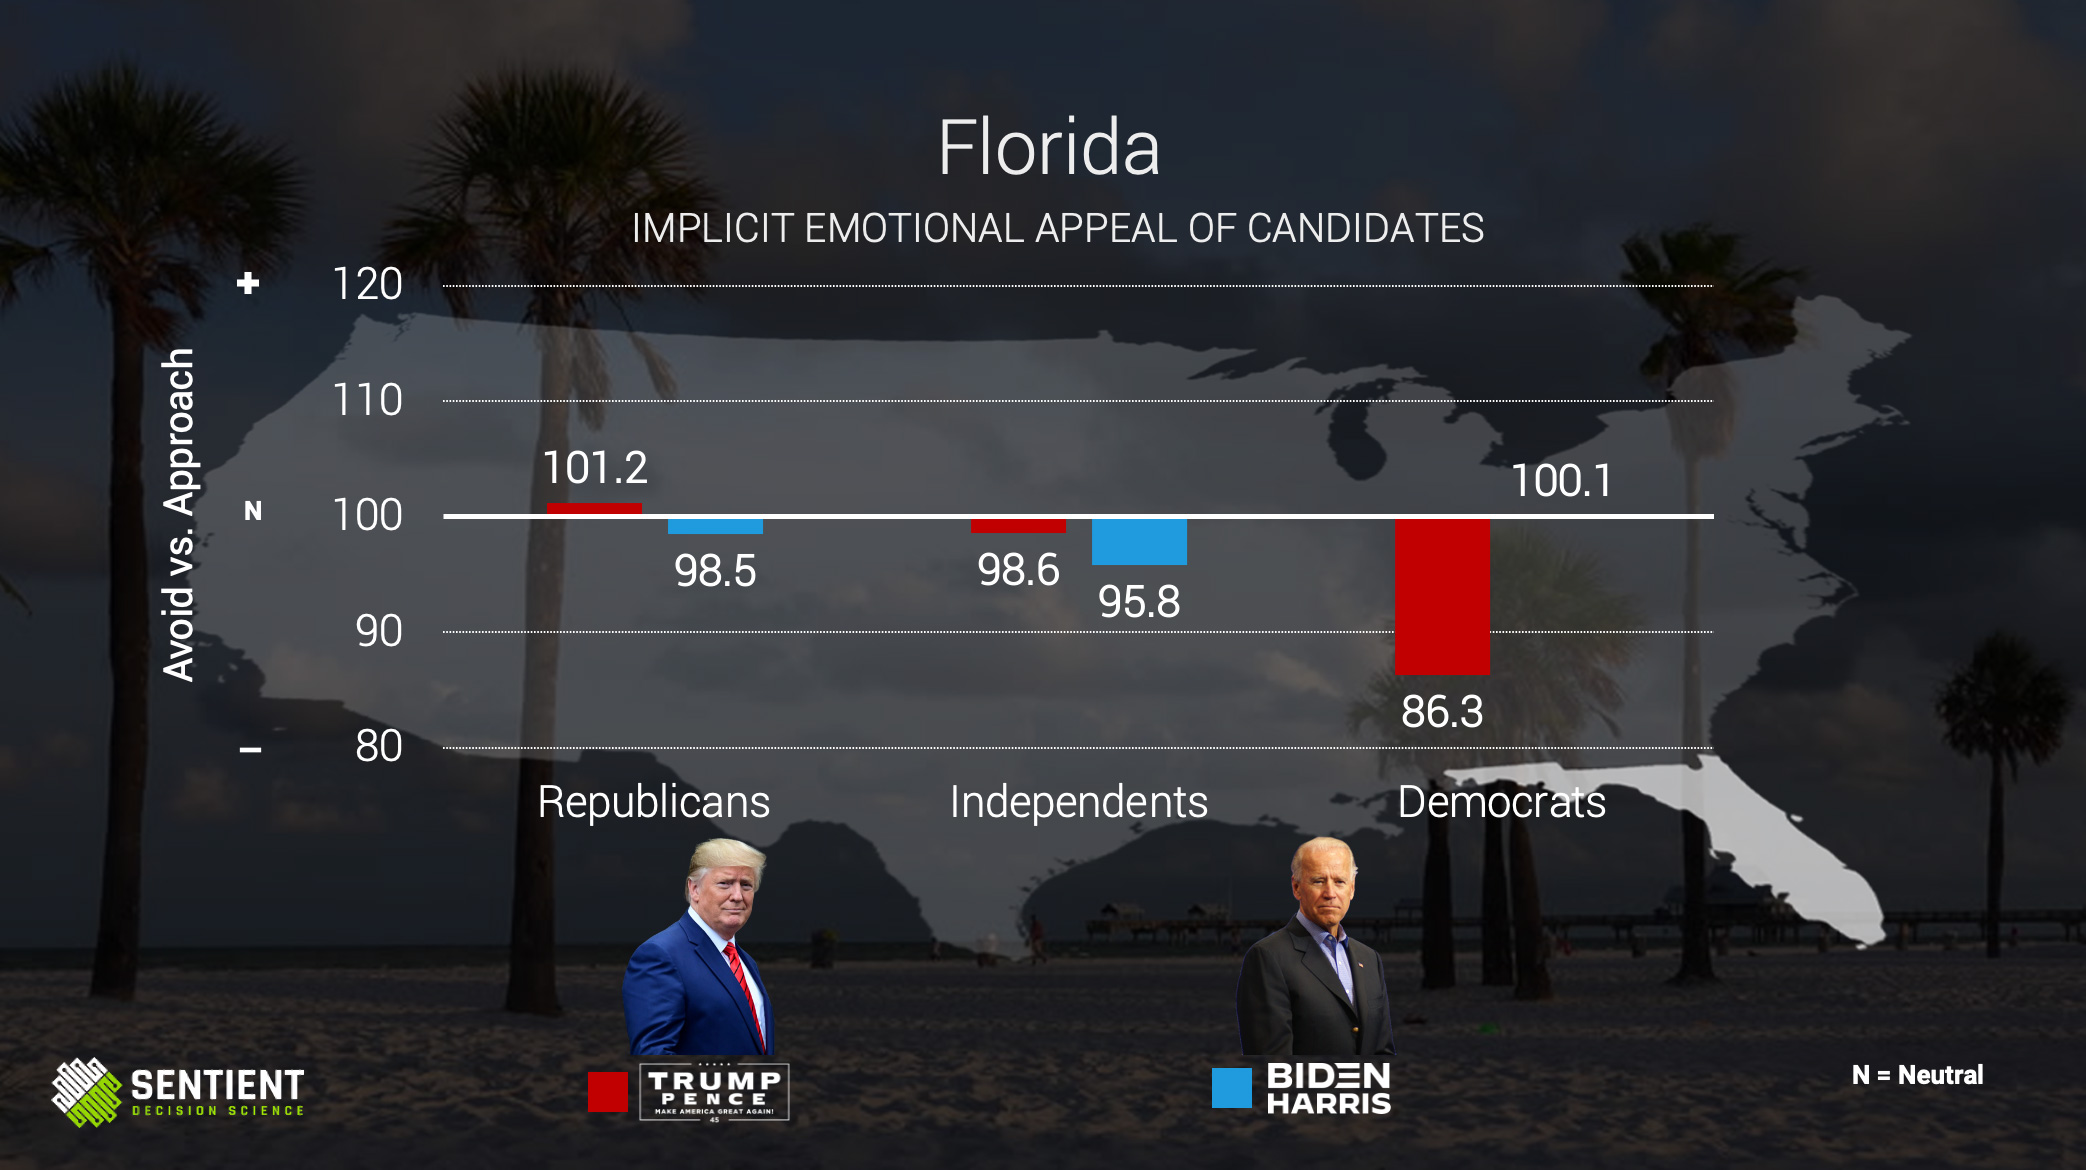 Florida Implicit Emotional Appeal of Candidates